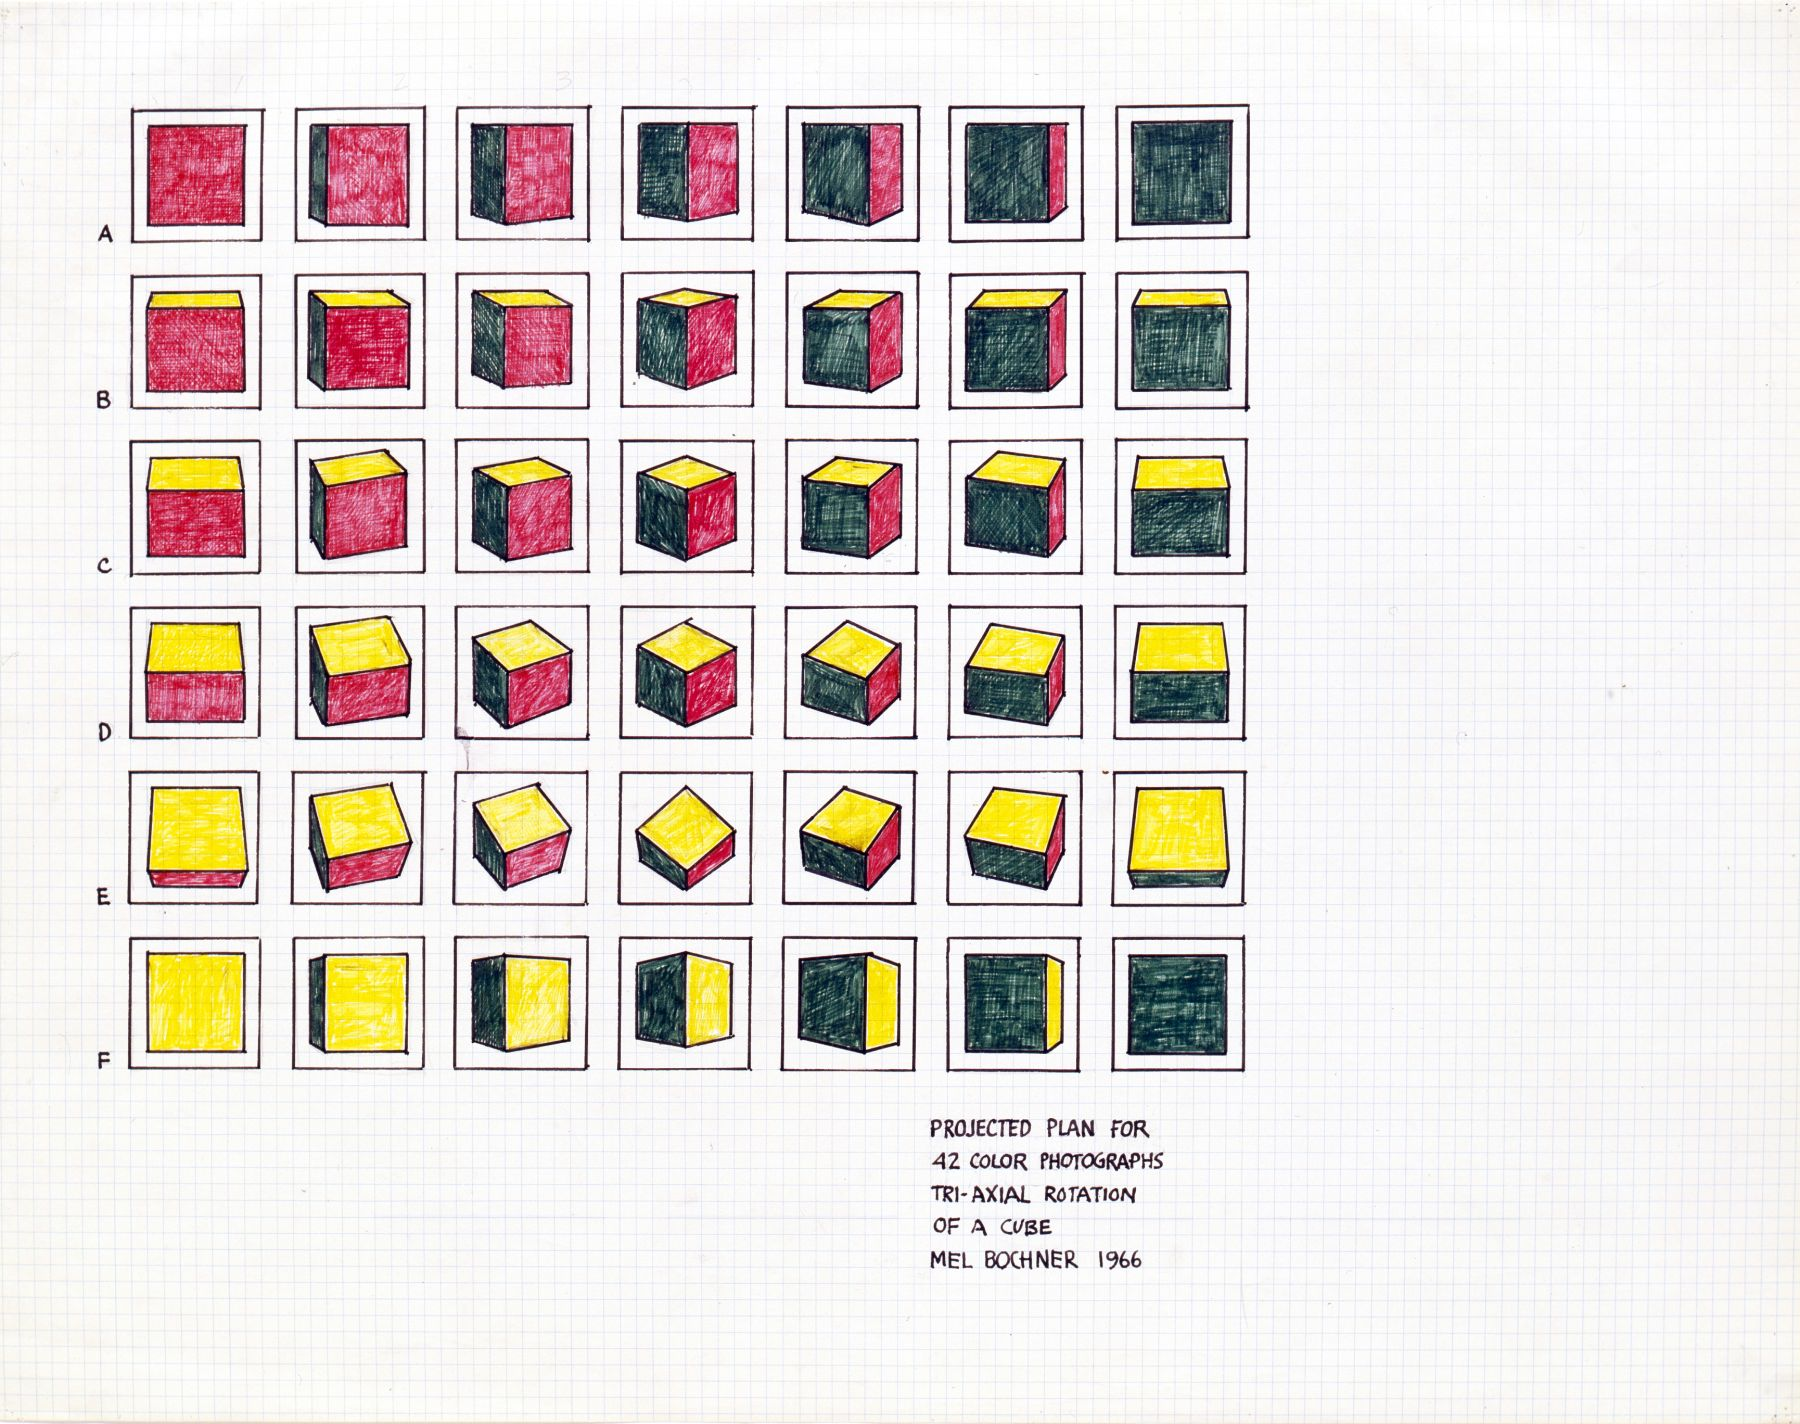 Mel Bochner,Projected Plan for 42 Photographs (Tri-Axial Rotation of a Cube), 1966.